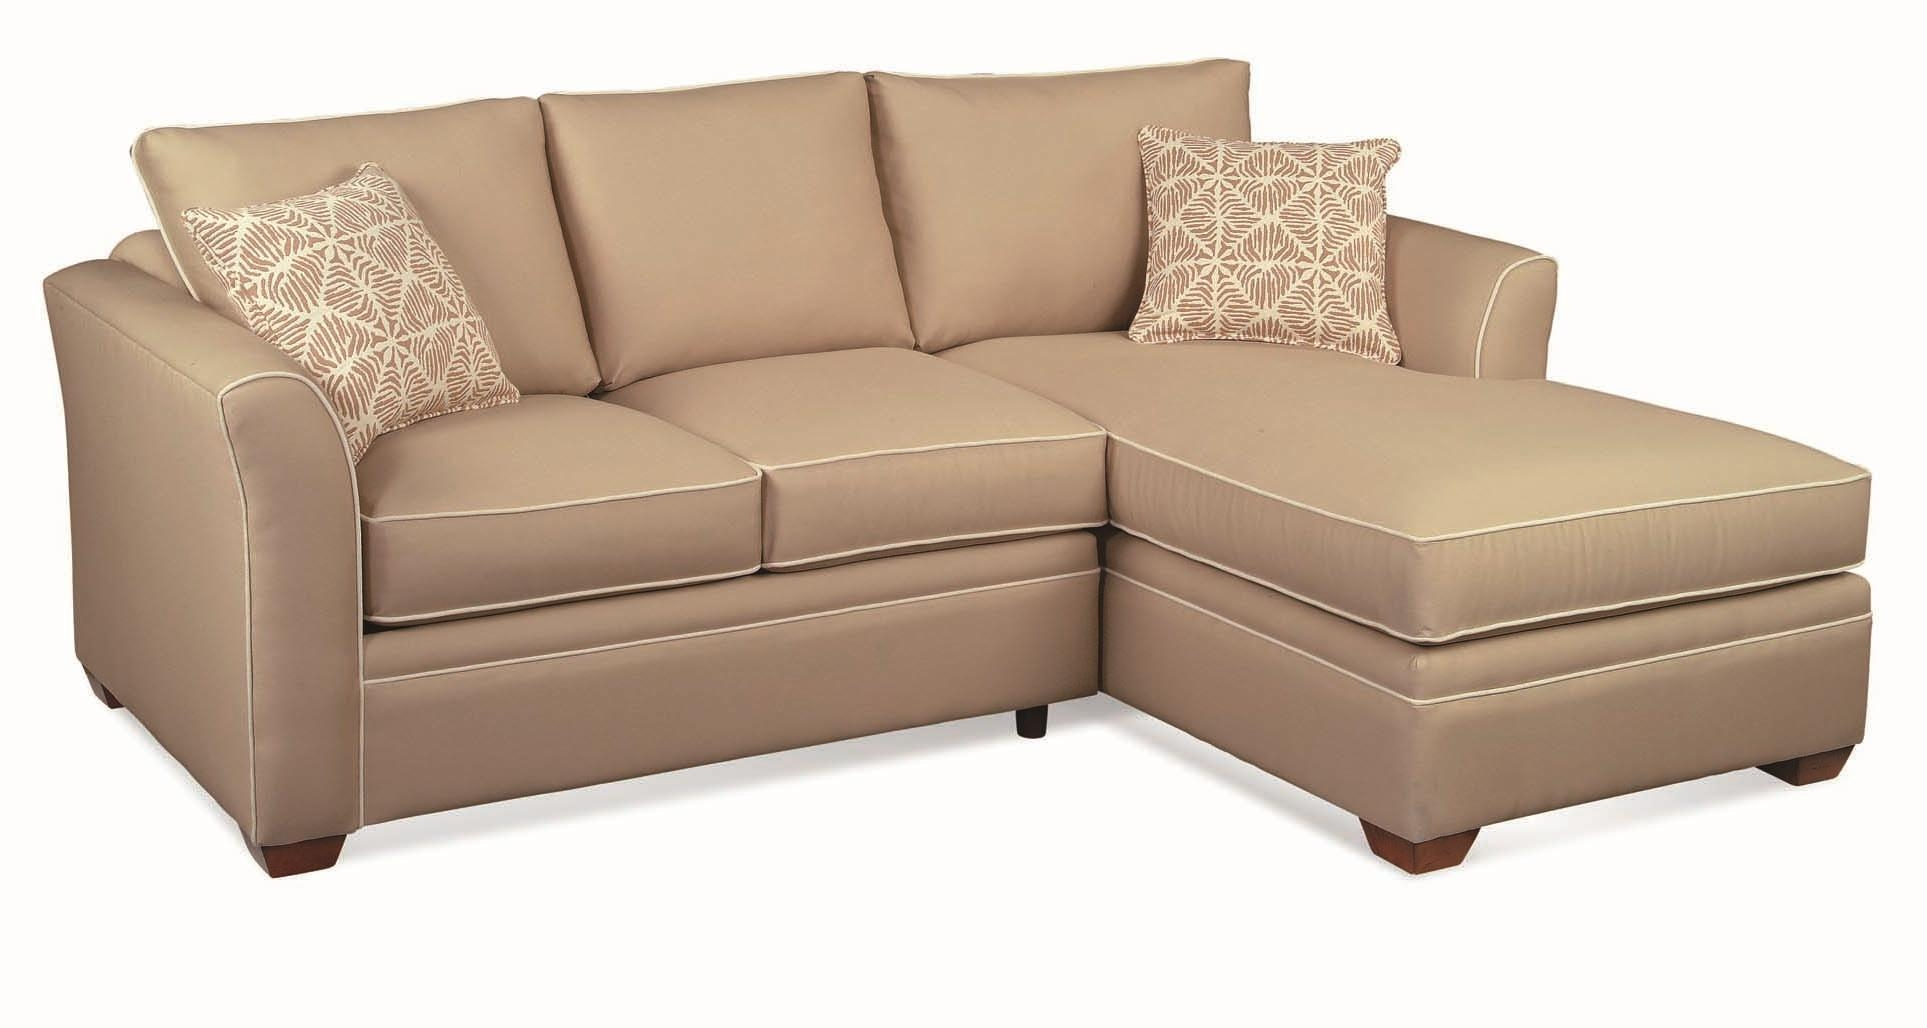 Braxton Culler Bridgeport Casual 2 Piece Sectional Sofa With Regarding Bridgeport Sofas (Image 1 of 20)